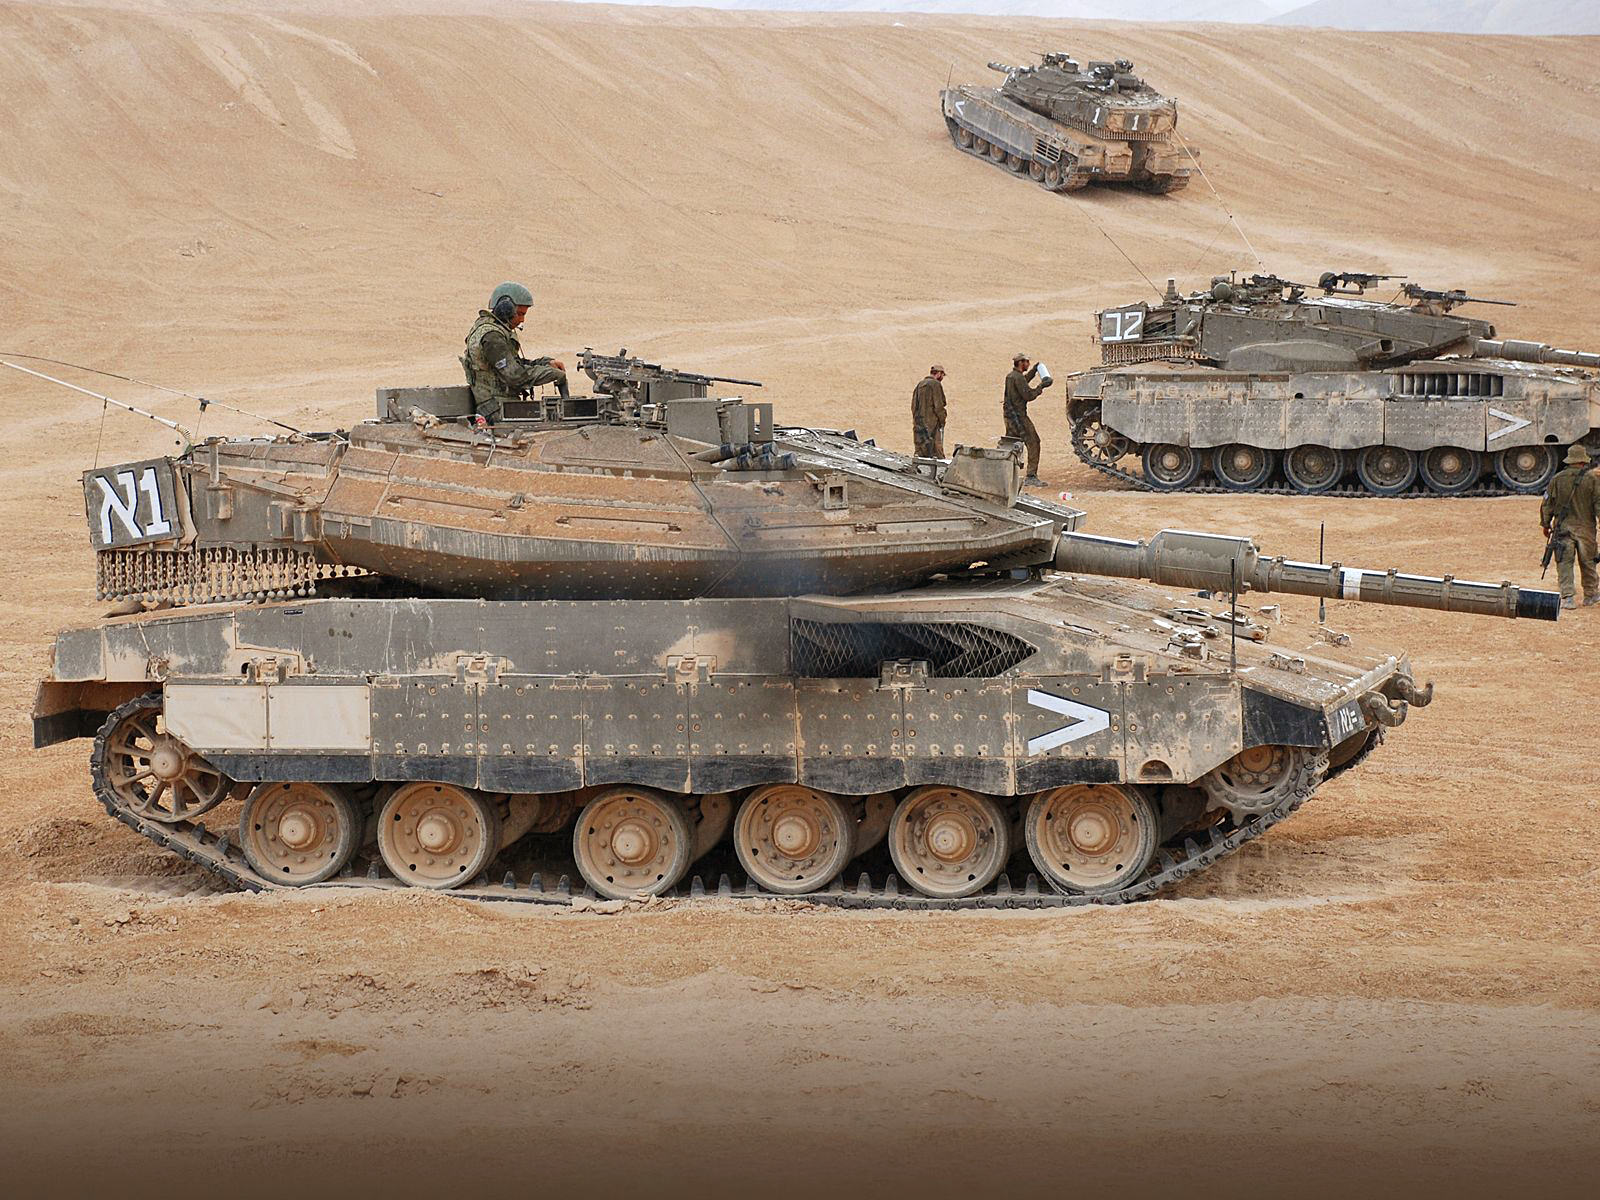 THE LEGEND OF THE M113 GAVIN CONTINUES IN COMBAT THE